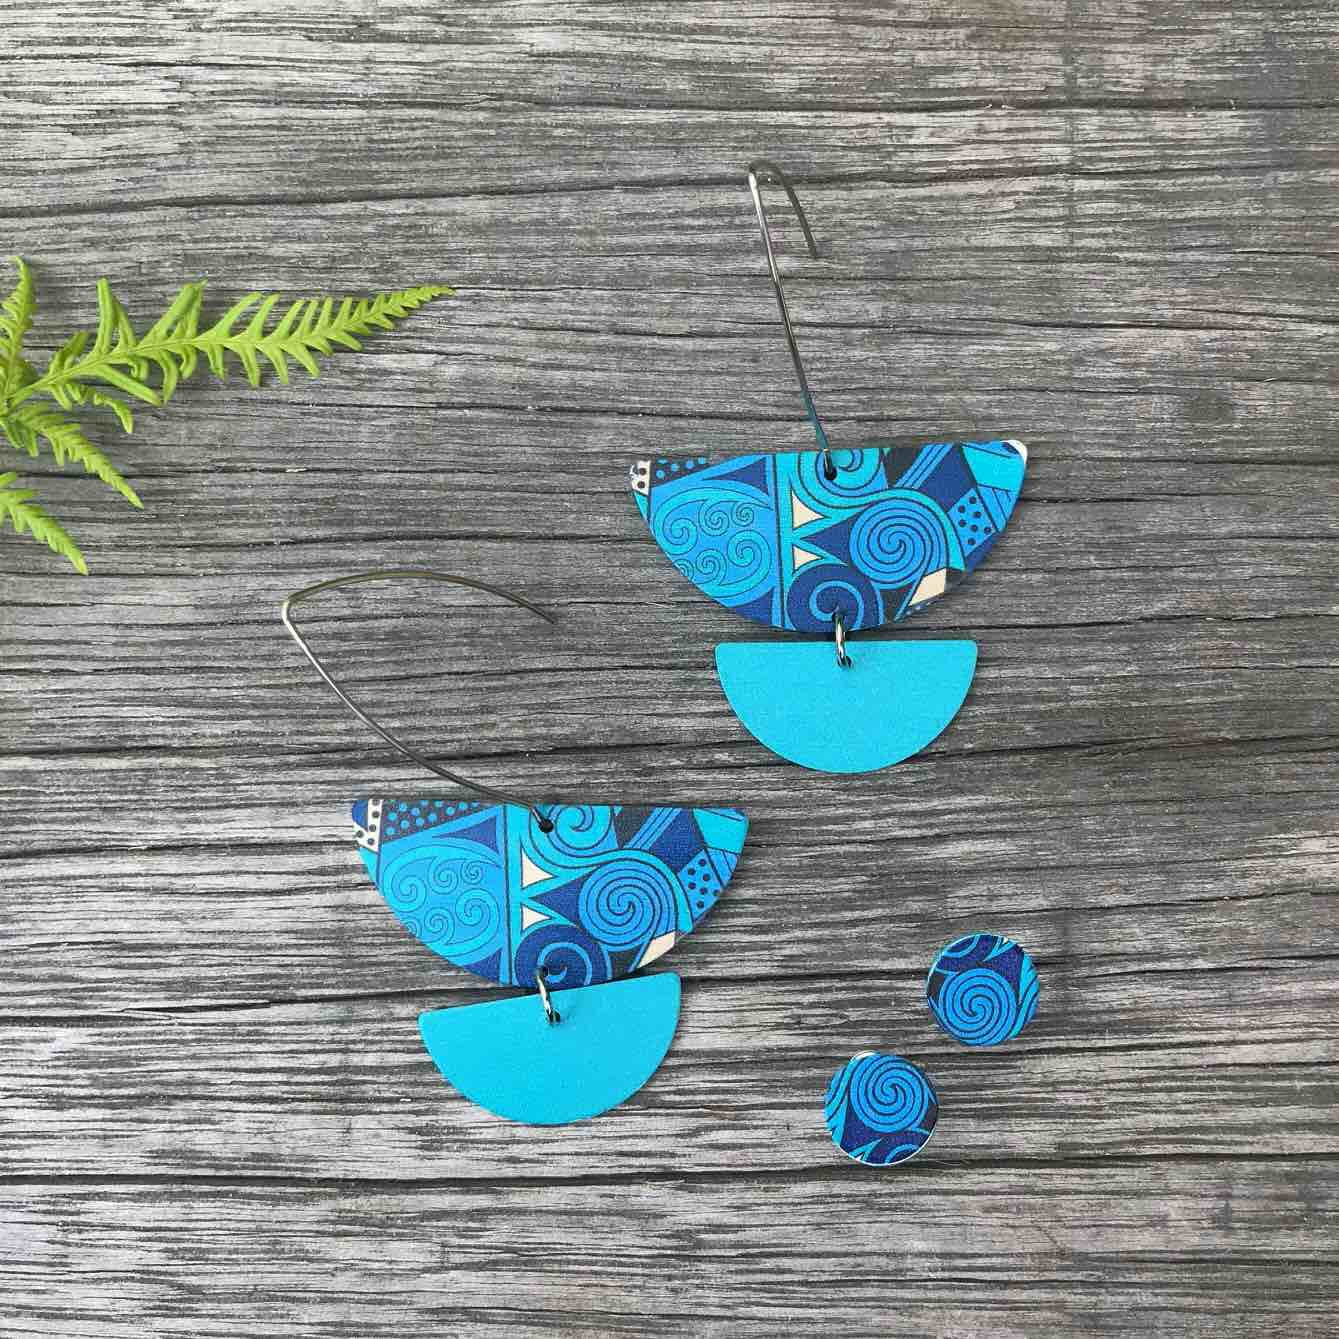 Blue pendant and stud earring set. Designed in New Zealand. www.tribalearth.co.nz